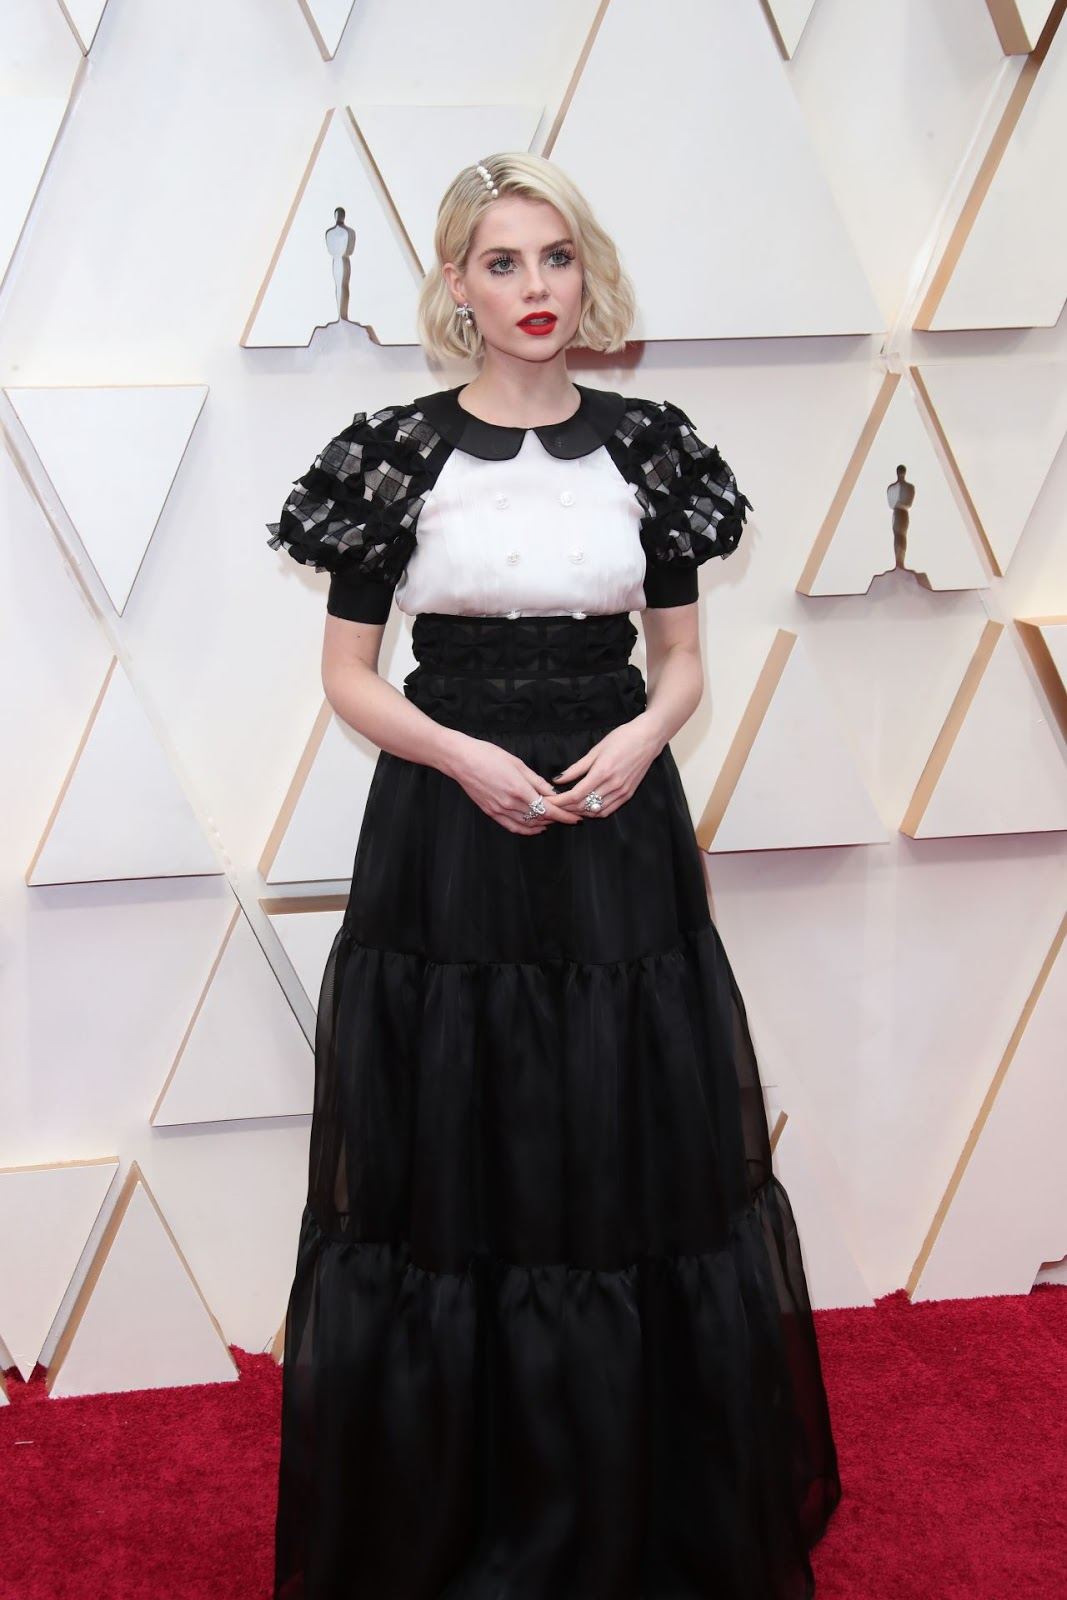 Lucy Boynton arrives in monochrome Chanel to the 2020 Oscars in Hollywood